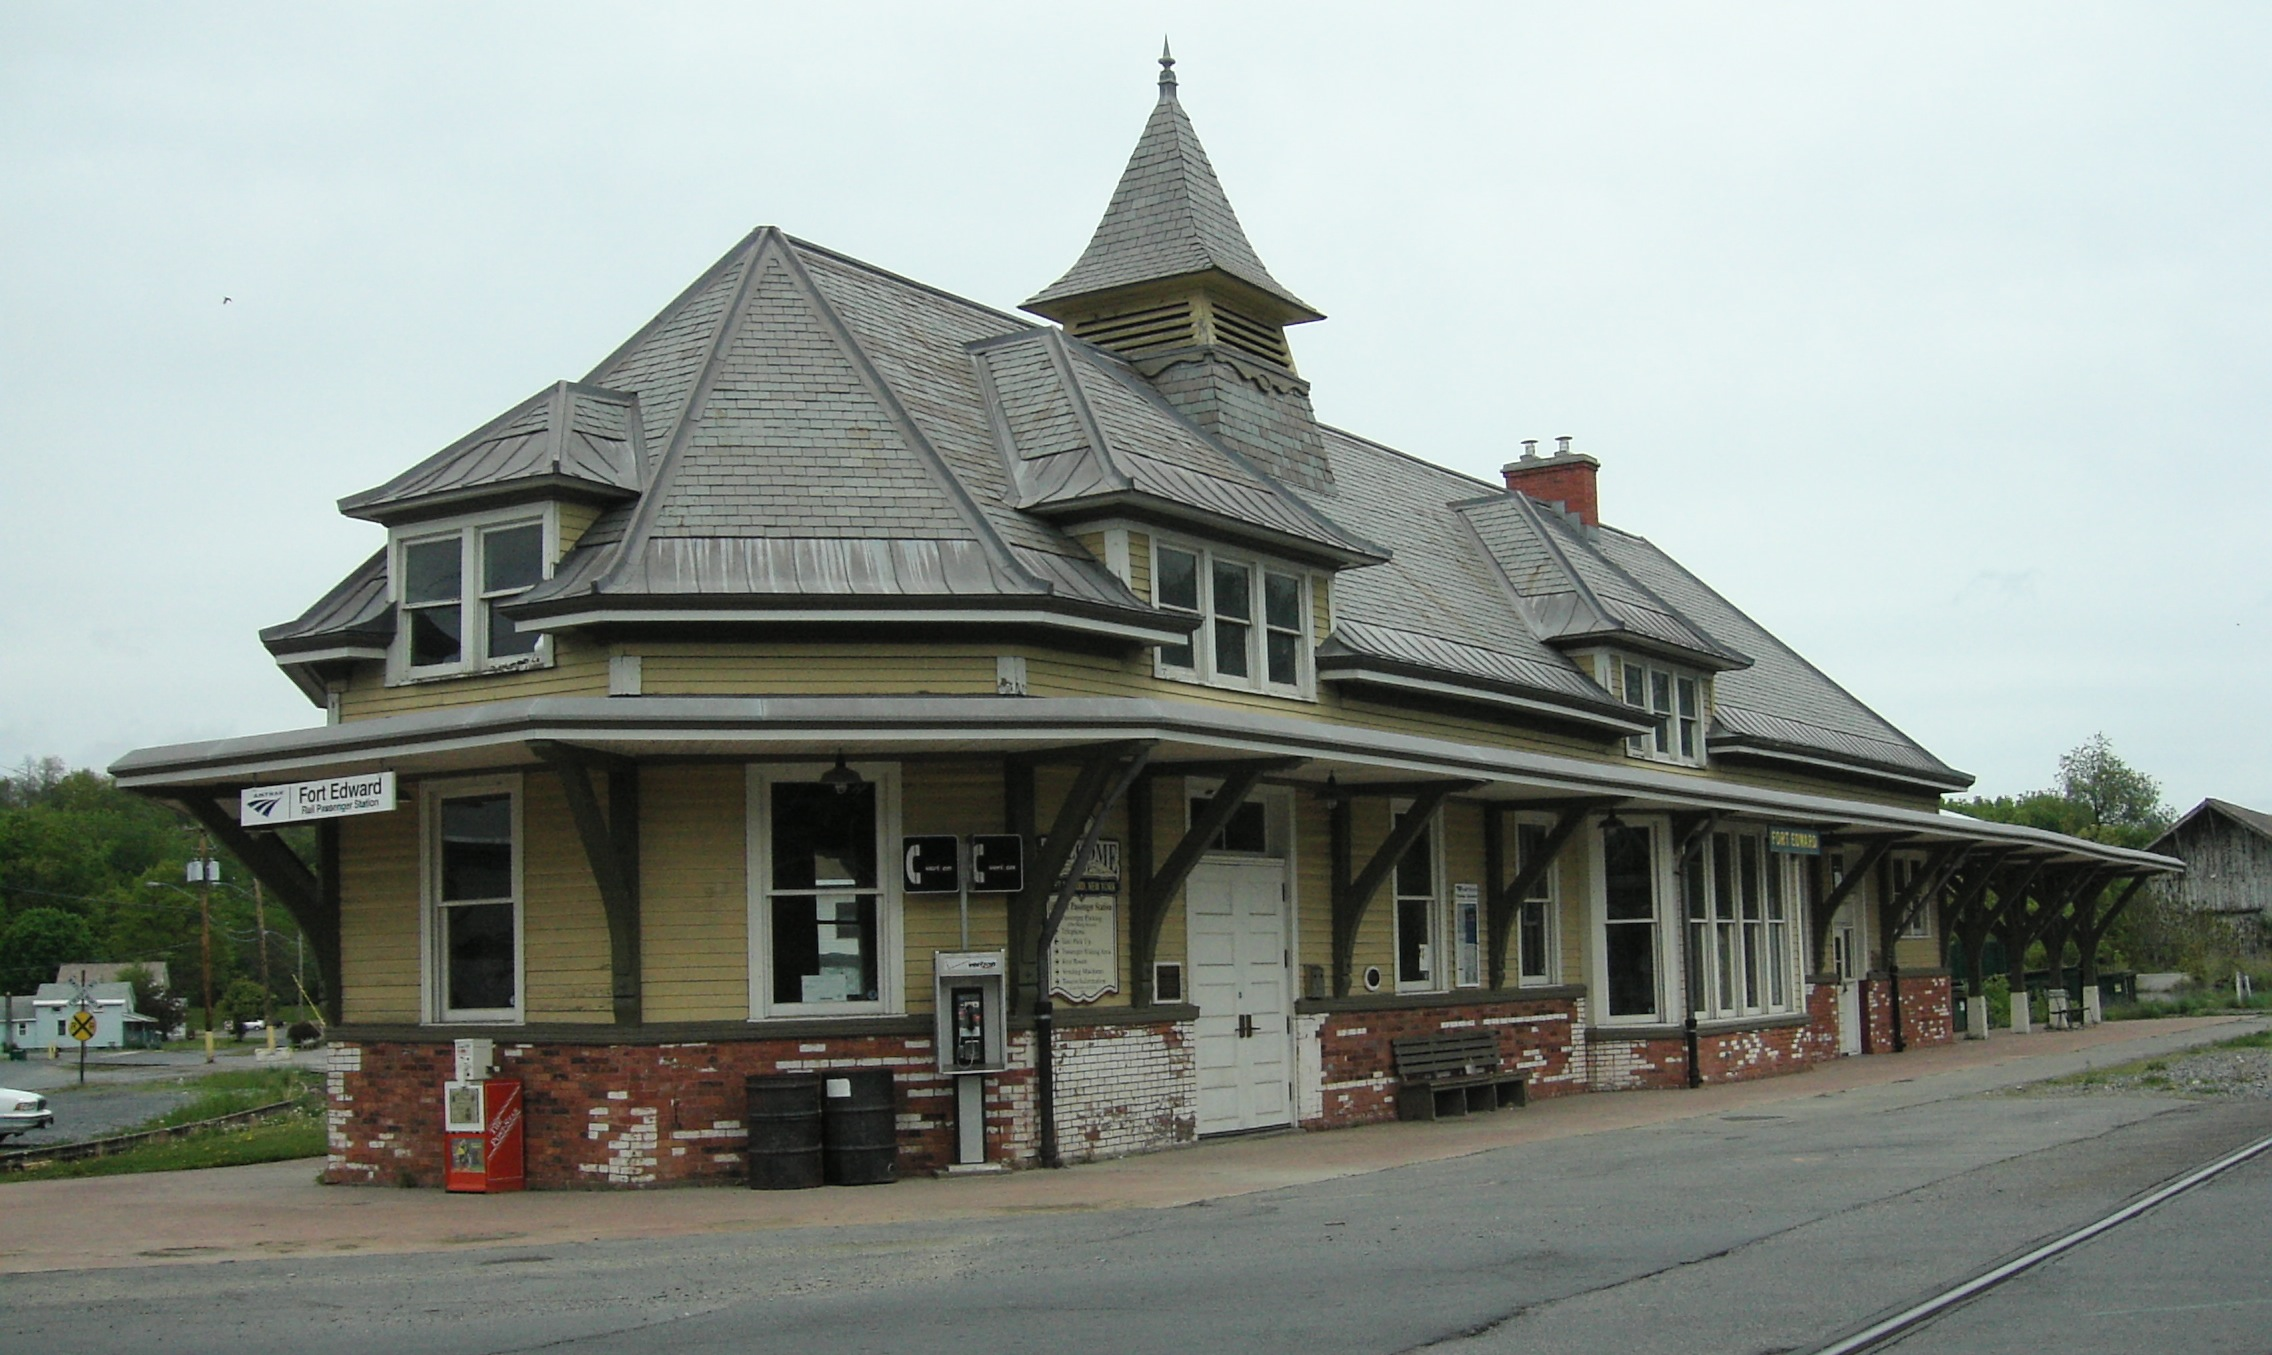 English: Fort Edward-Glens Falls rail station